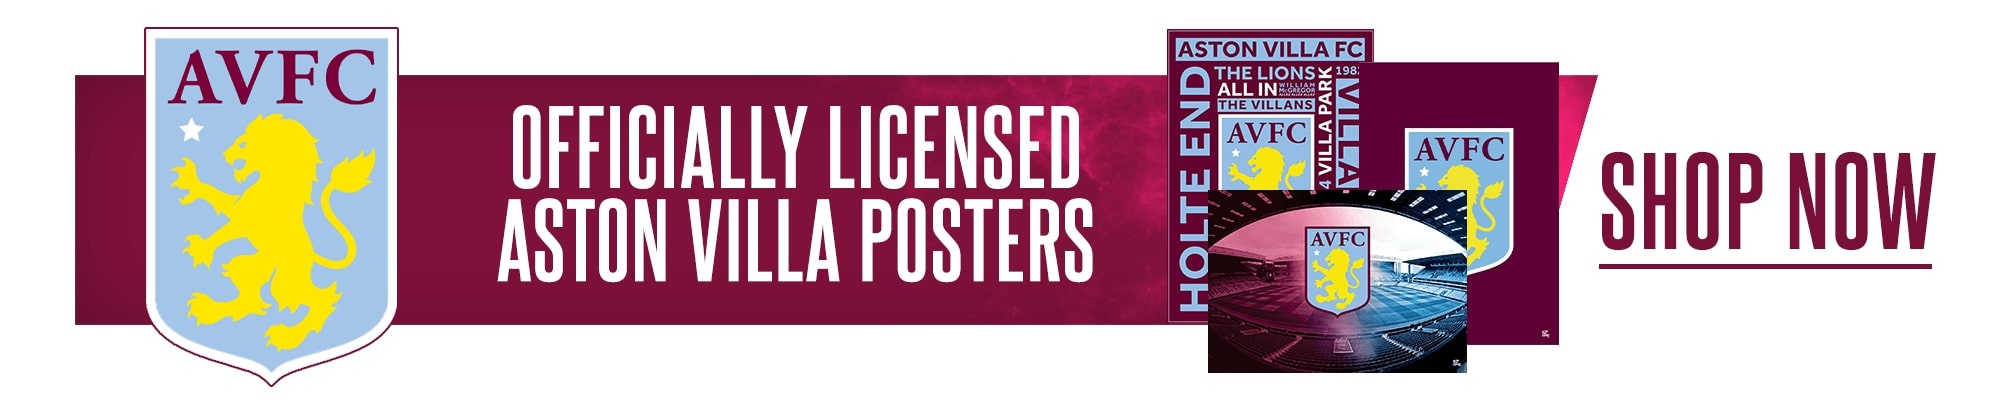 Official Aston Villa Posters